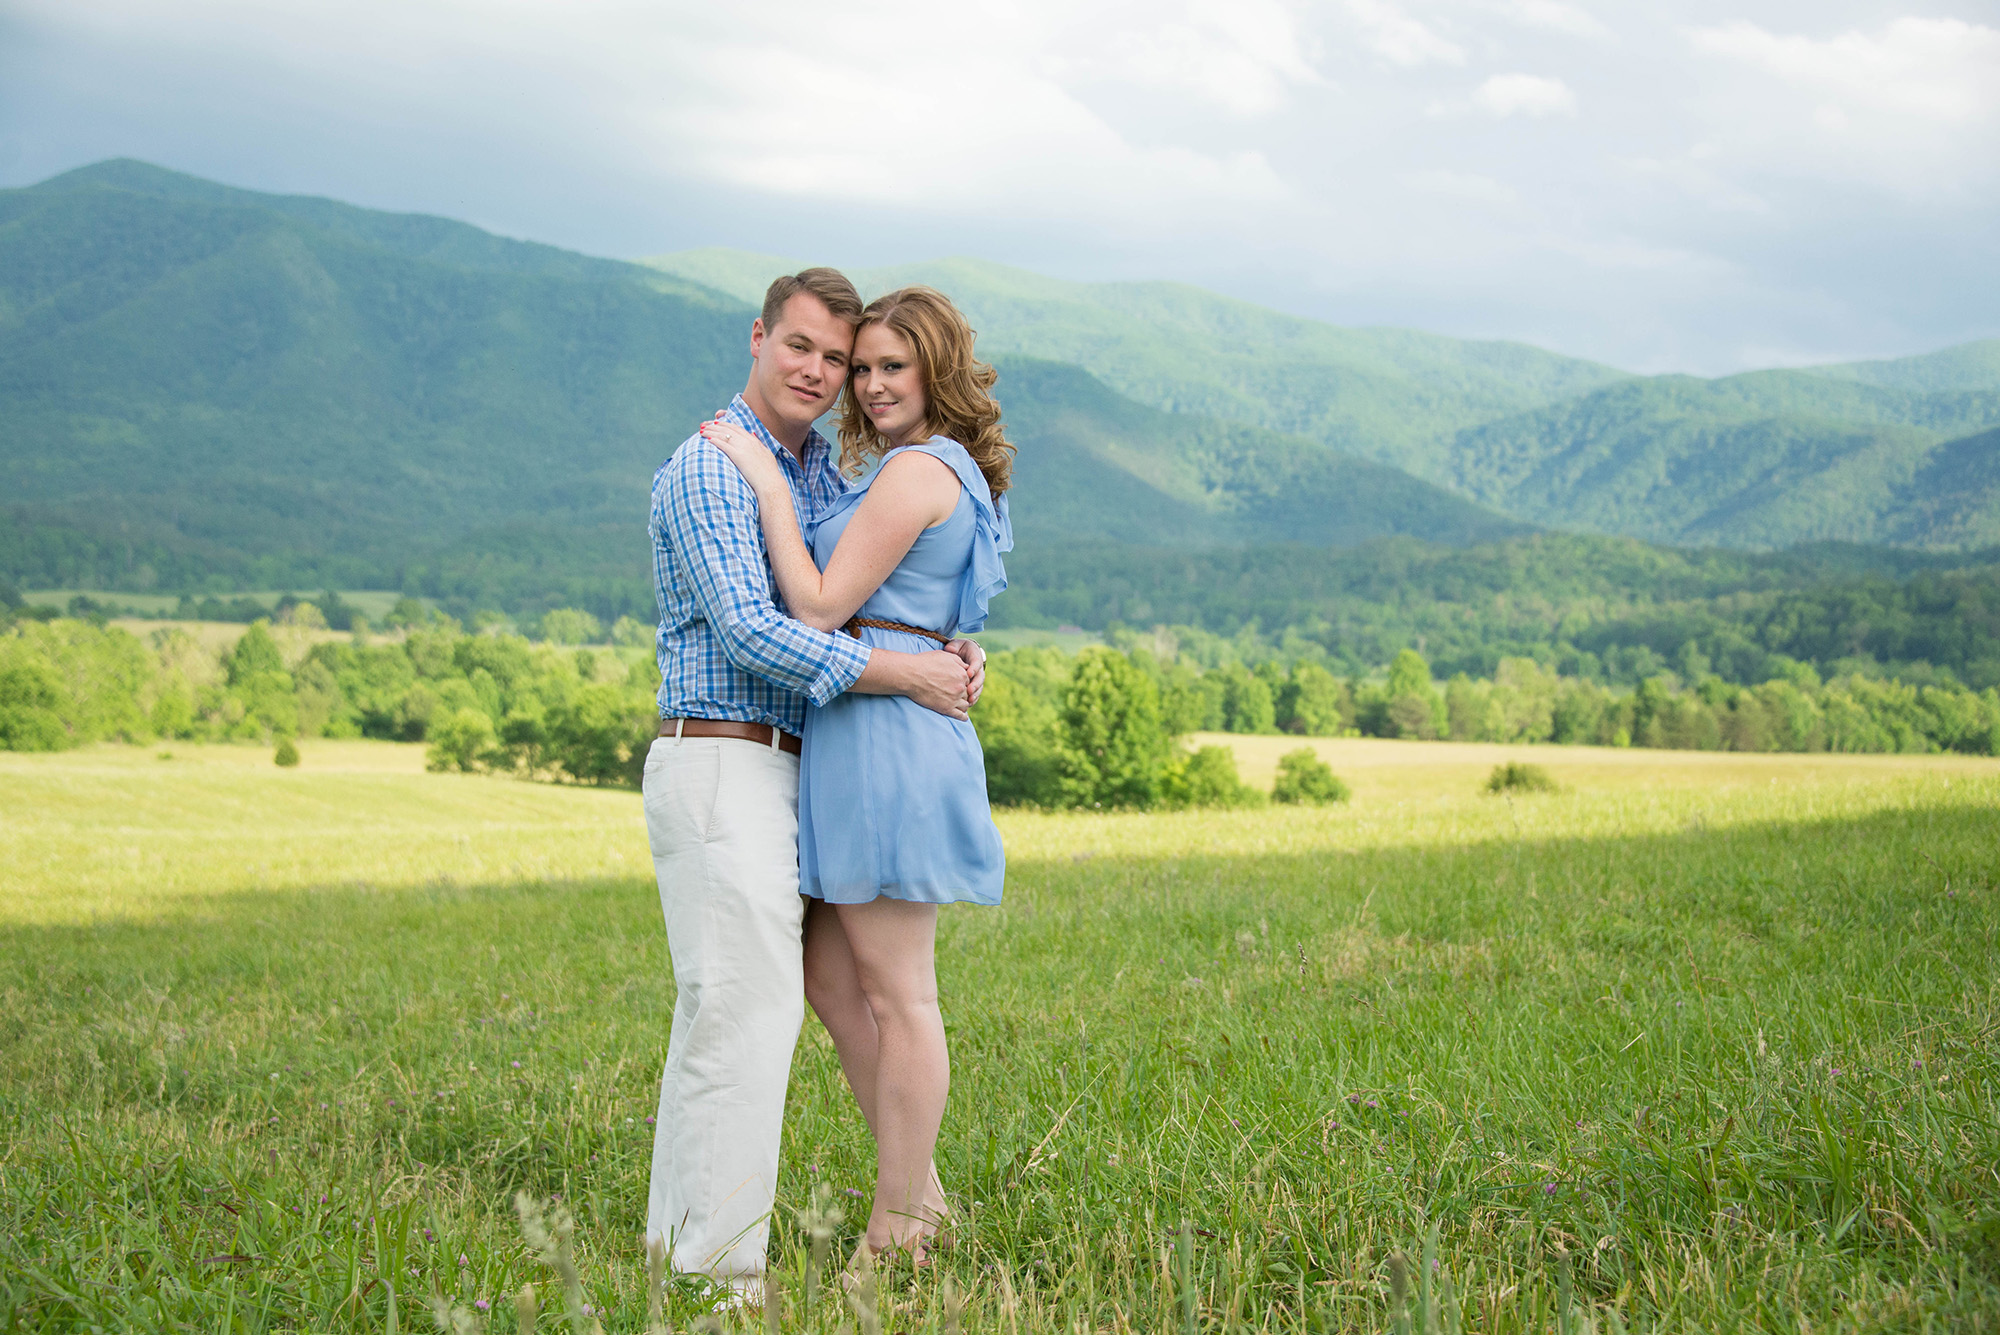 Cades Cove Engagement Session Photo Shoot